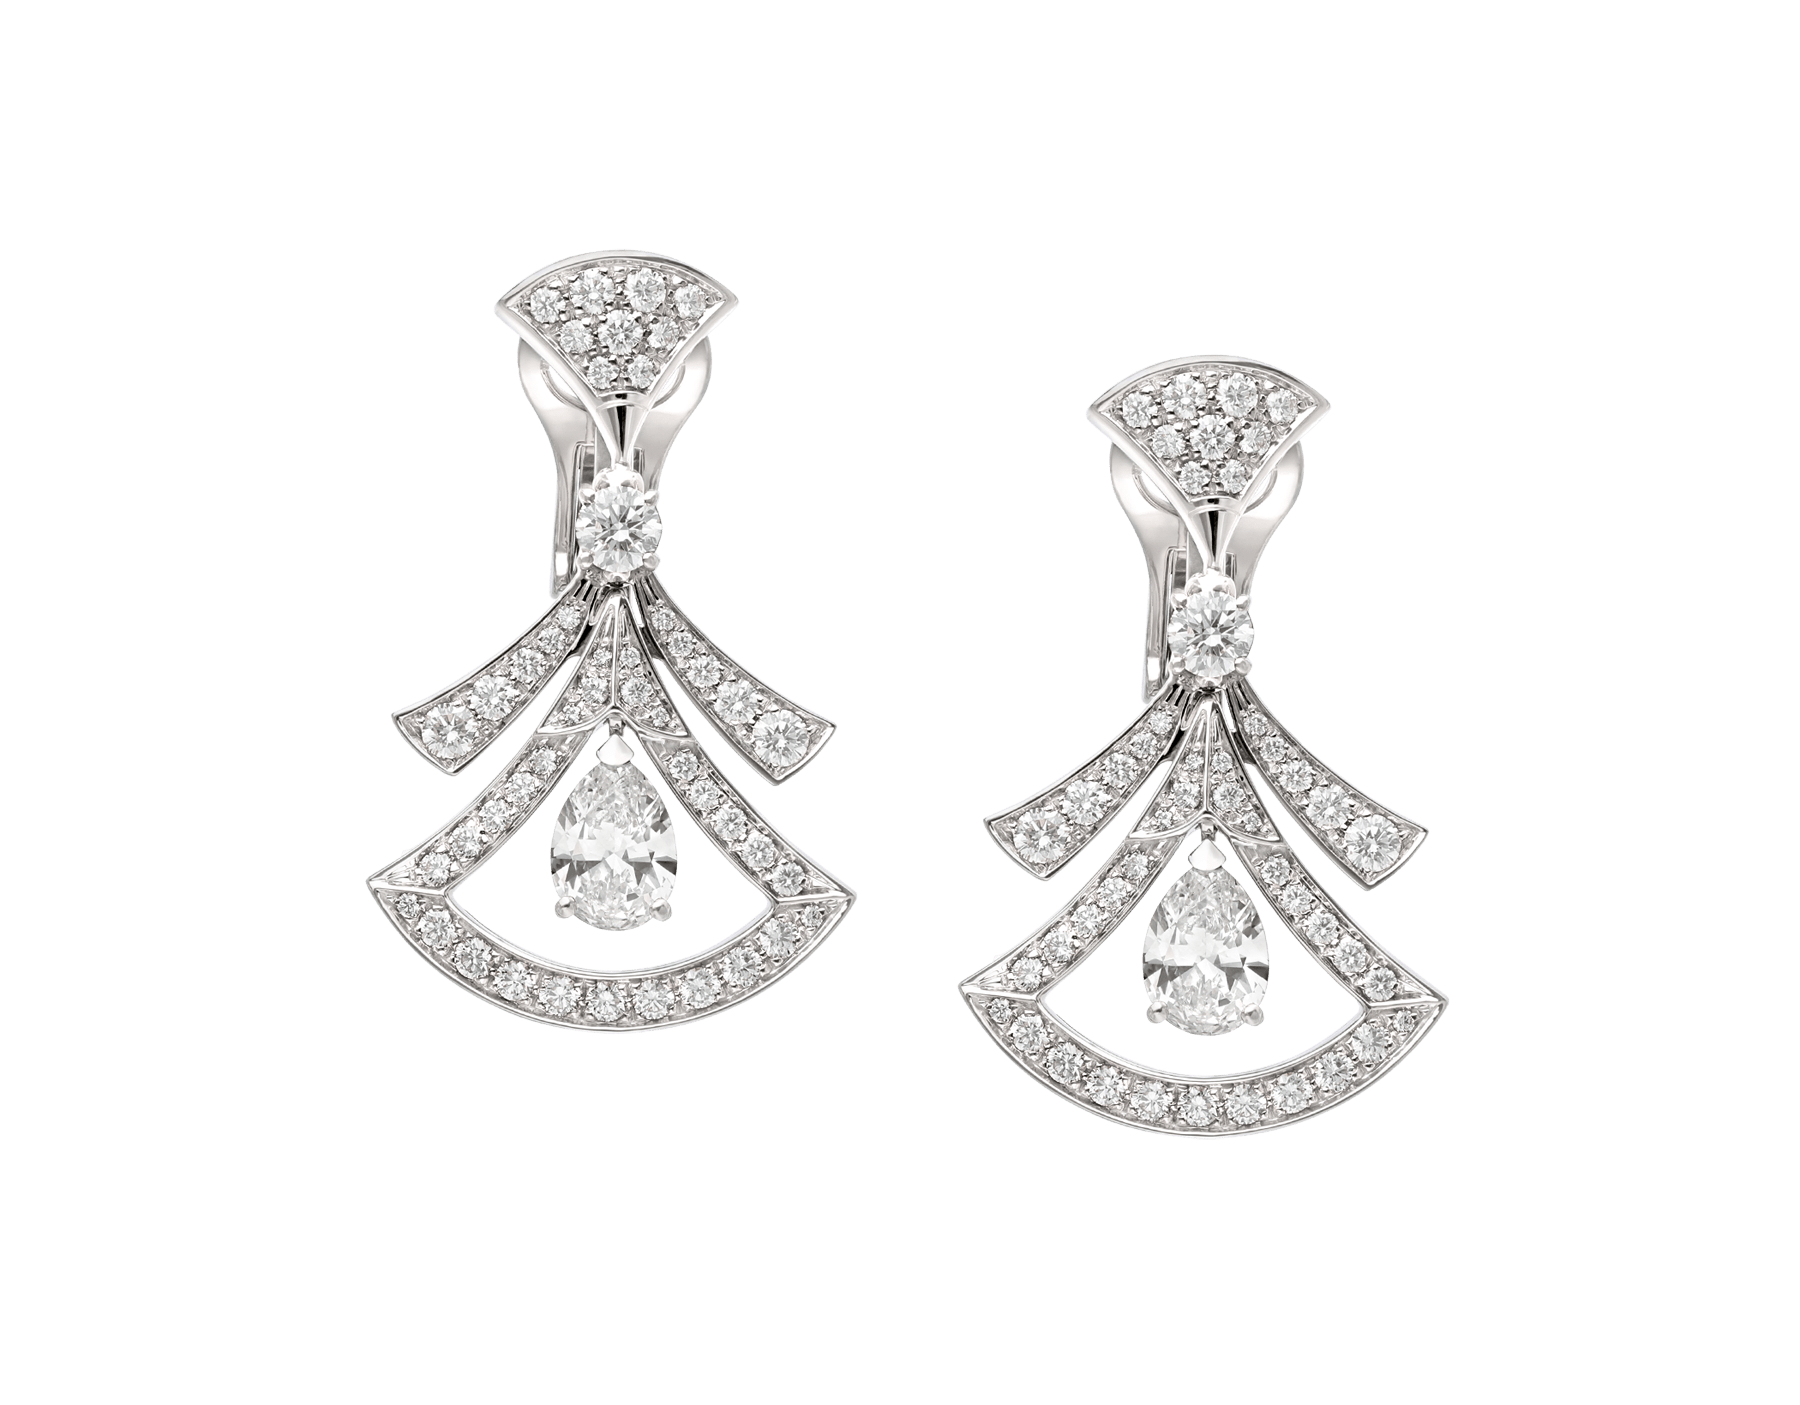 Divas' Dream 18 kt white gold openwork earrings set with two pear-shaped diamonds (1.40 ct), two round brilliant-cut diamonds (0.30 ct) and pavé diamonds (1.18 ct) 358221 image 1